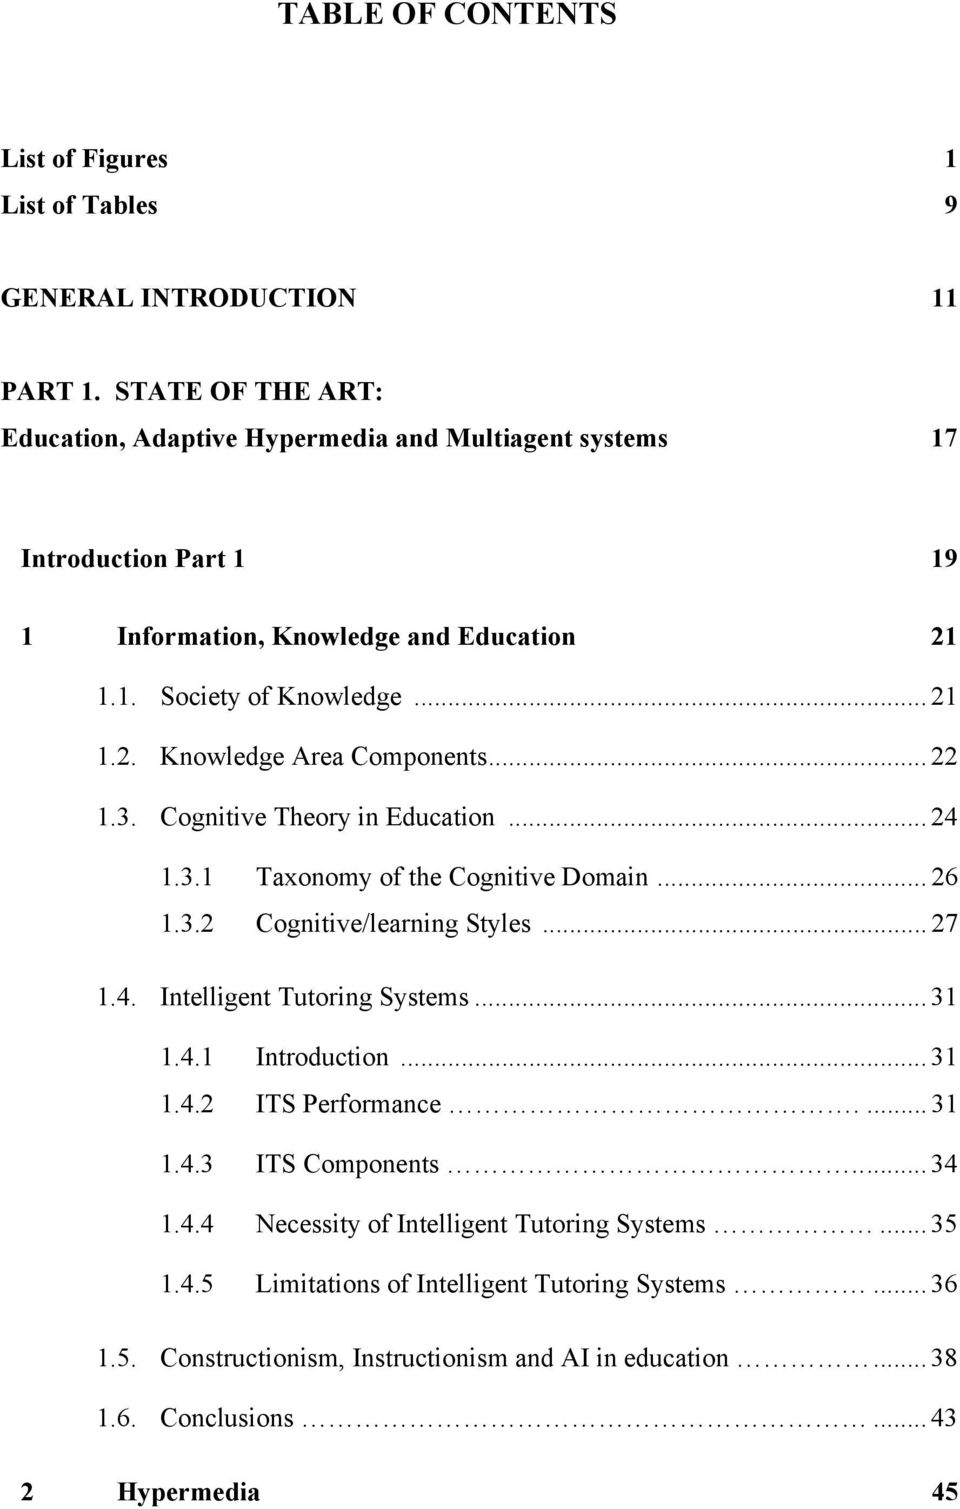 .. 22 1.3. Cognitive Theory in Education... 24 1.3.1 Taxonomy of the Cognitive Domain... 26 1.3.2 Cognitive/learning Styles... 27 1.4. Intelligent Tutoring Systems... 31 1.4.1 Introduction.